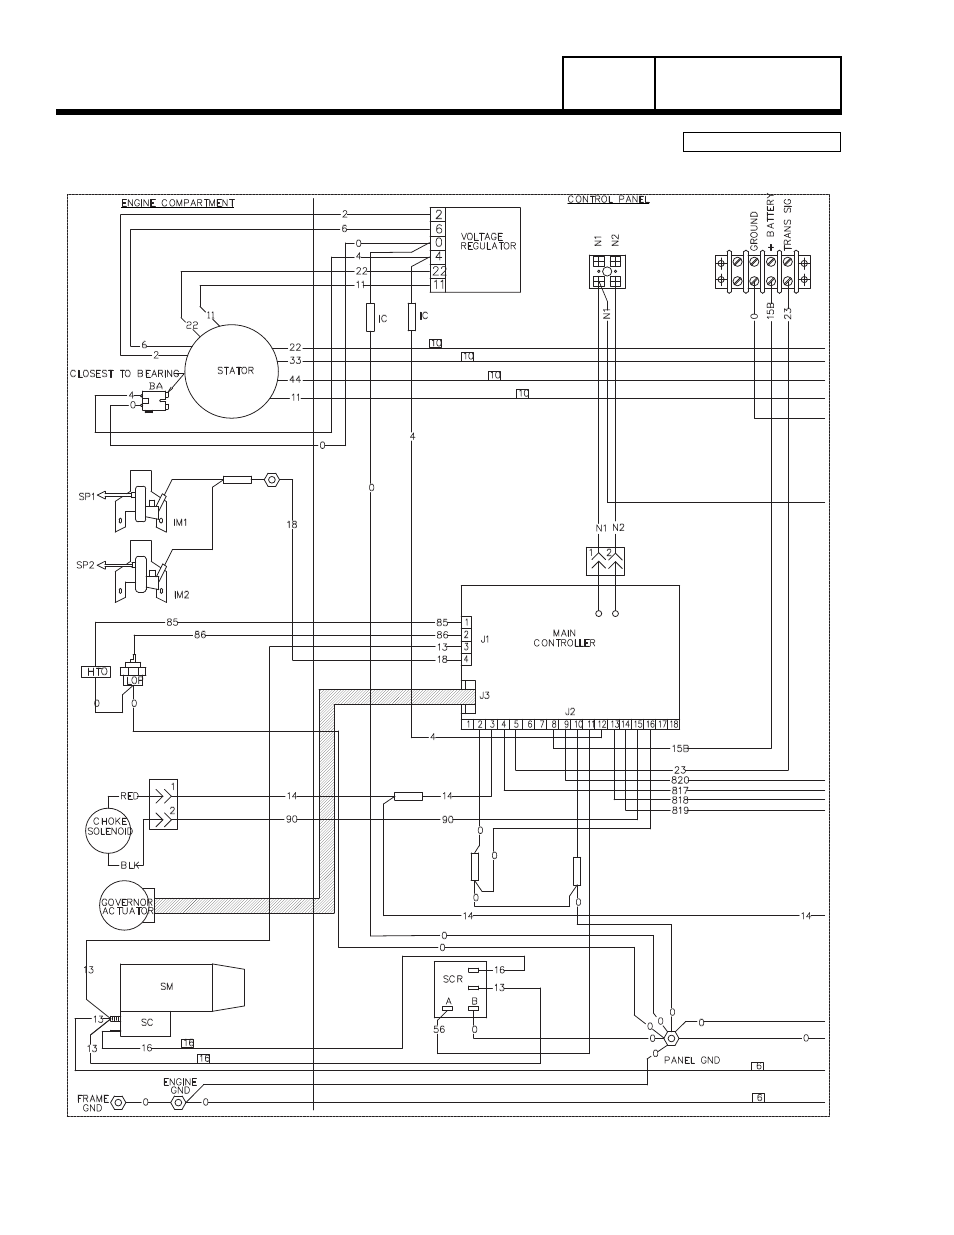 Wiring Diagram  14 Kw Home Standby  Group G  Part 7